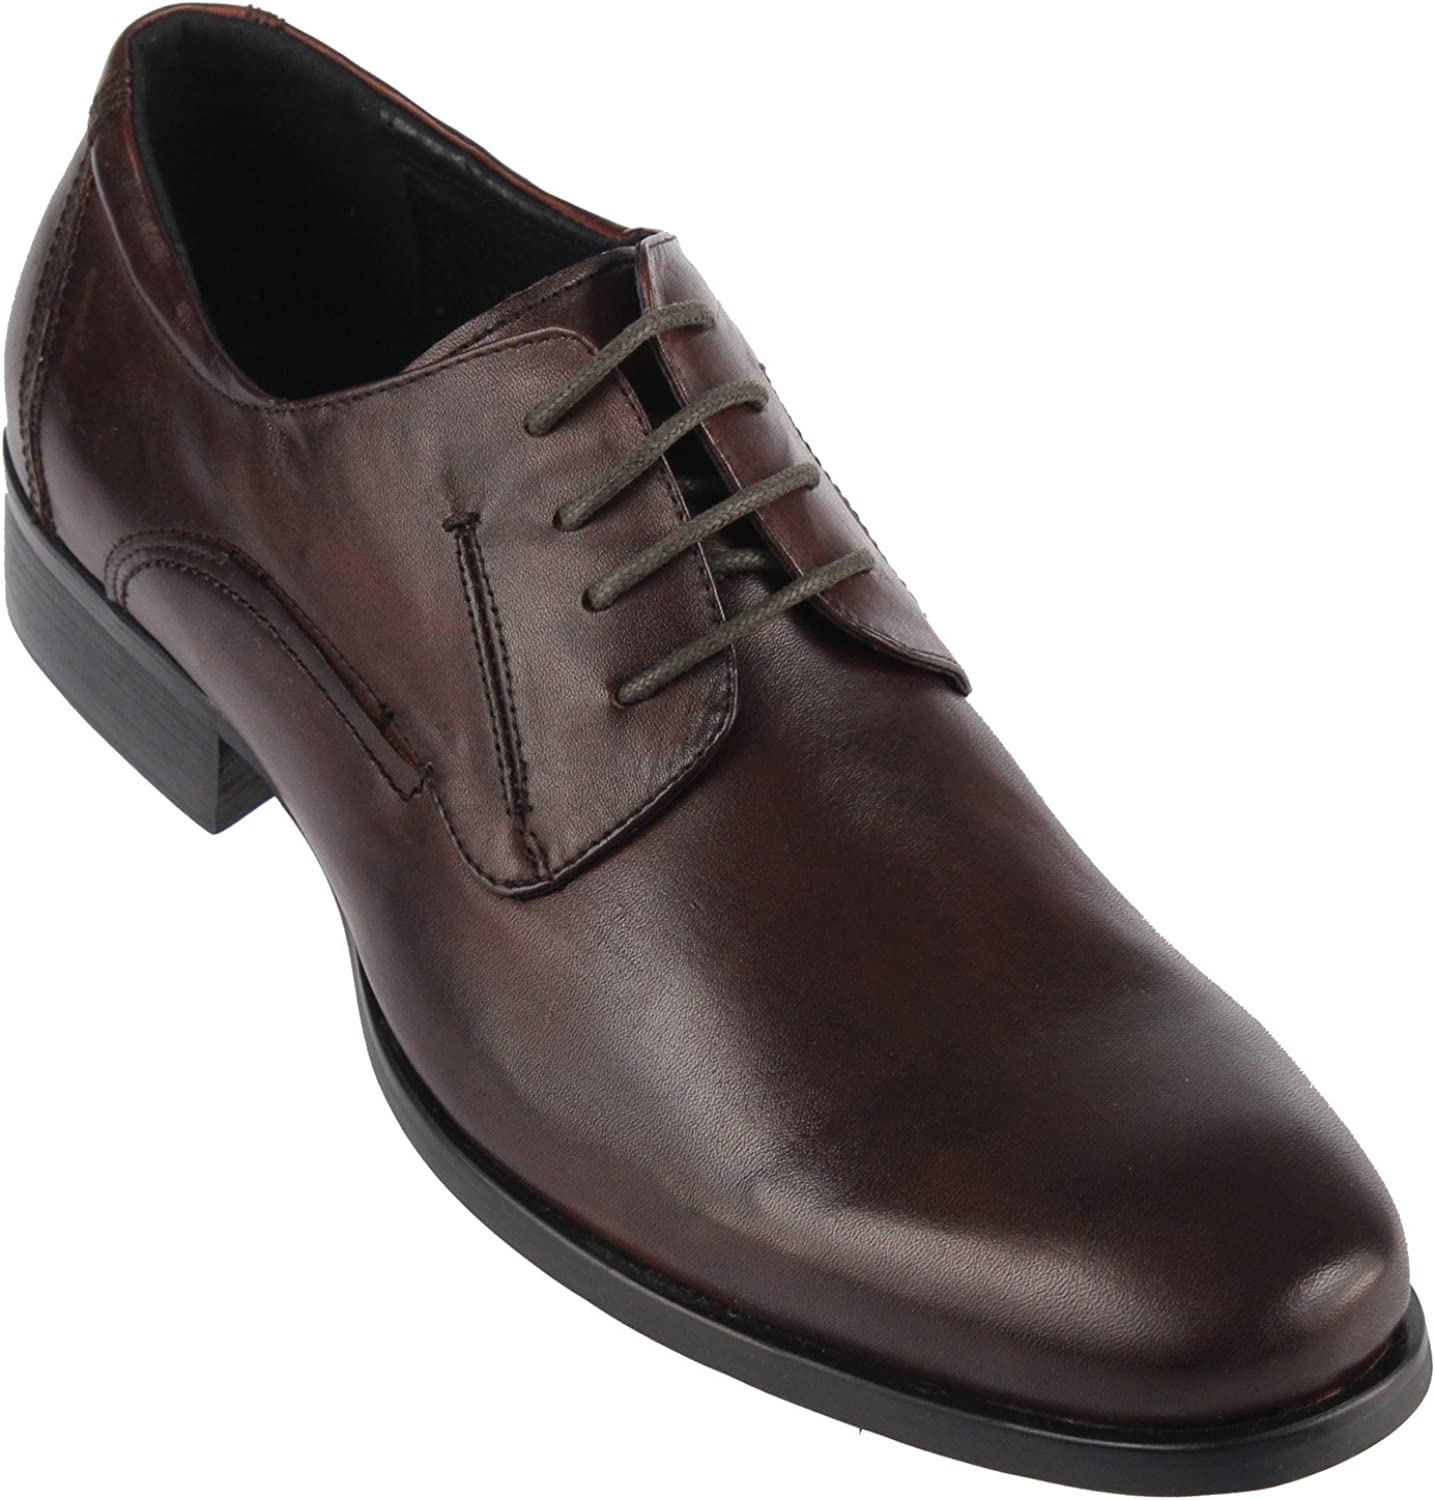 Kenneth Cole Capital City LE Mens Lace Up Oxford Shoes